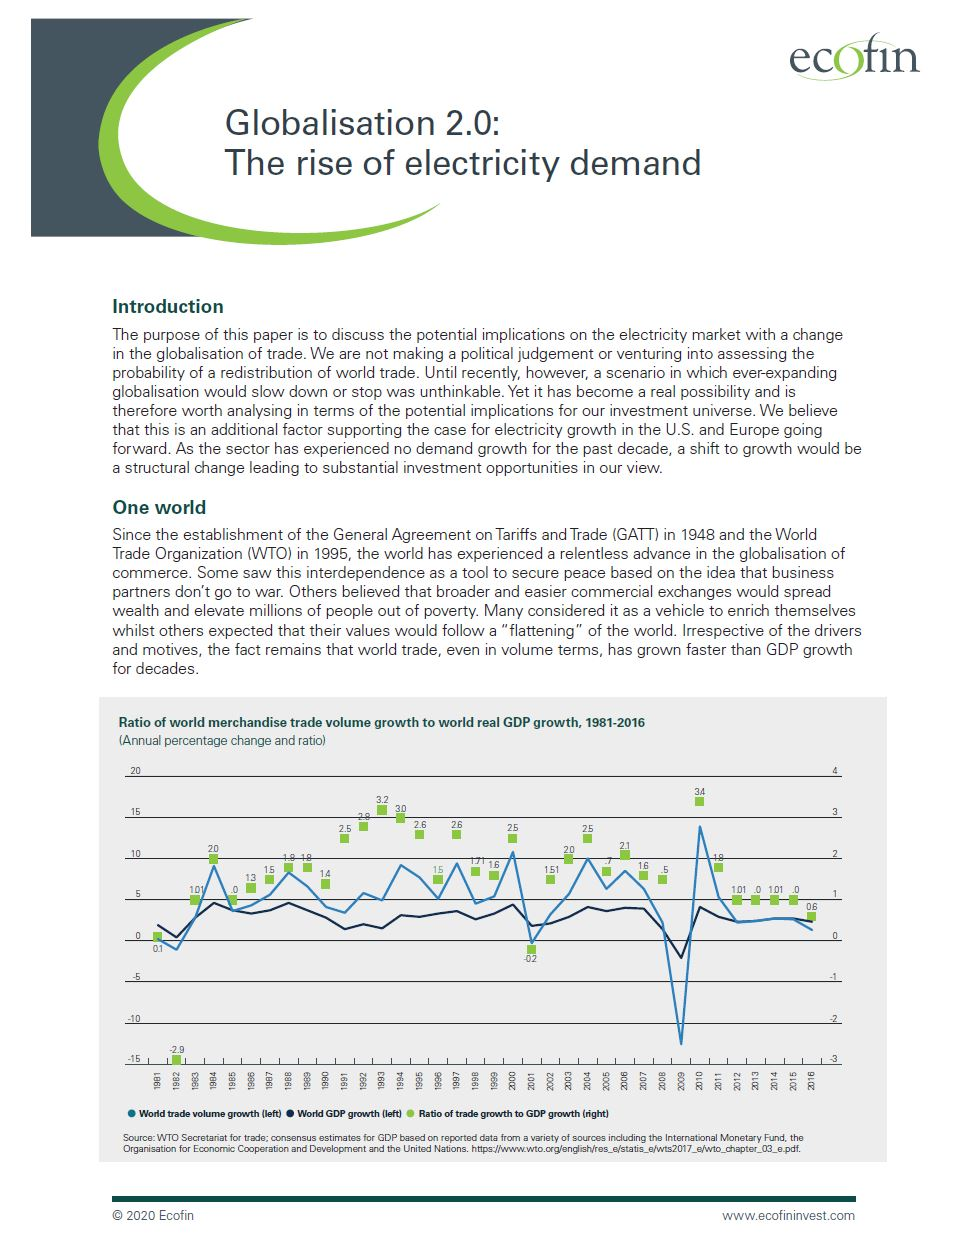 Globalisation 2.0: The rise of electricity demand